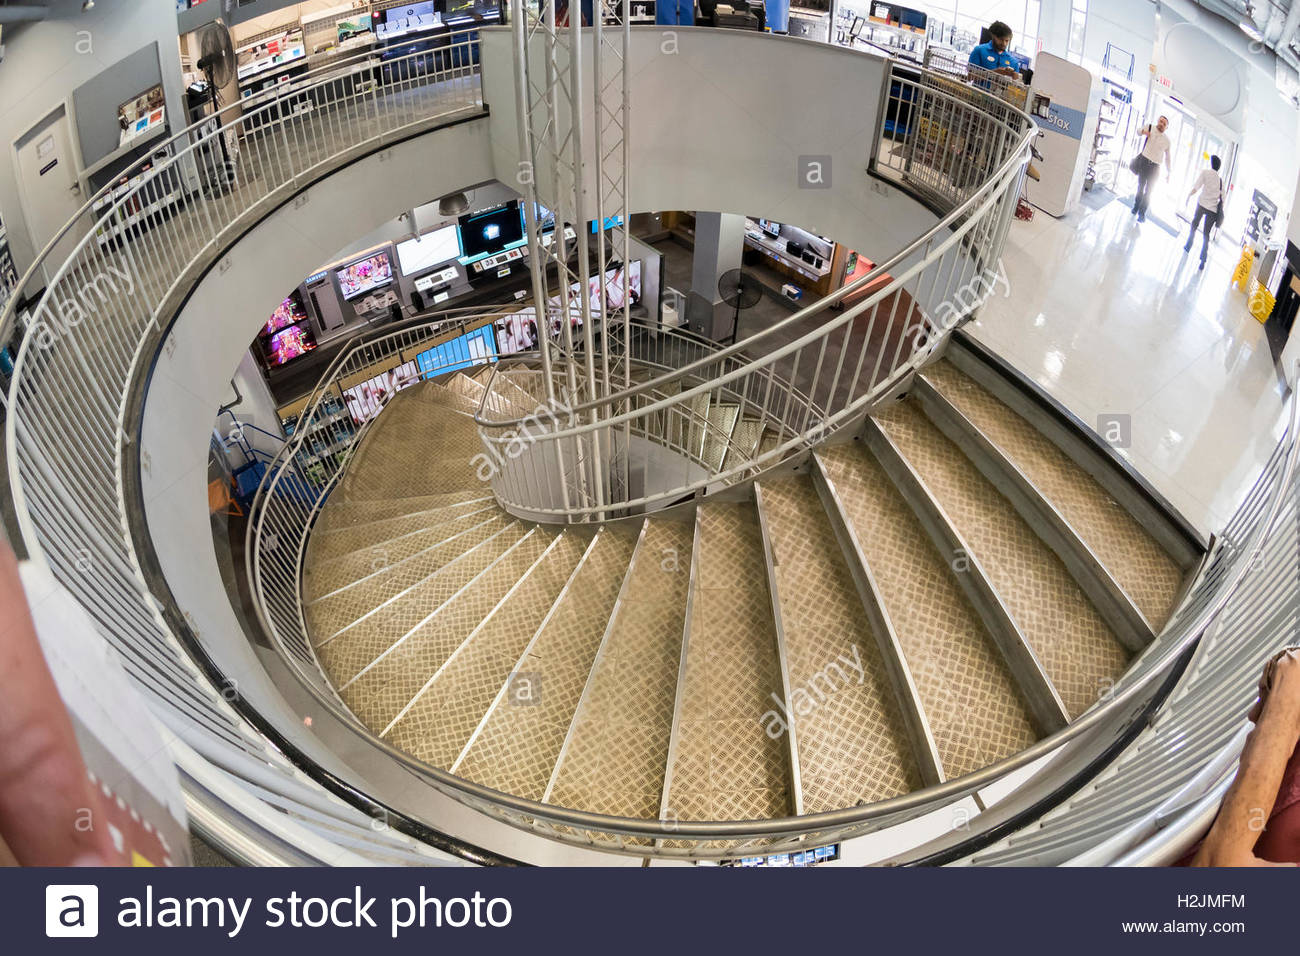 Circular Stair At Best Buy Store At North York. Best Buy Is An American  Multinational